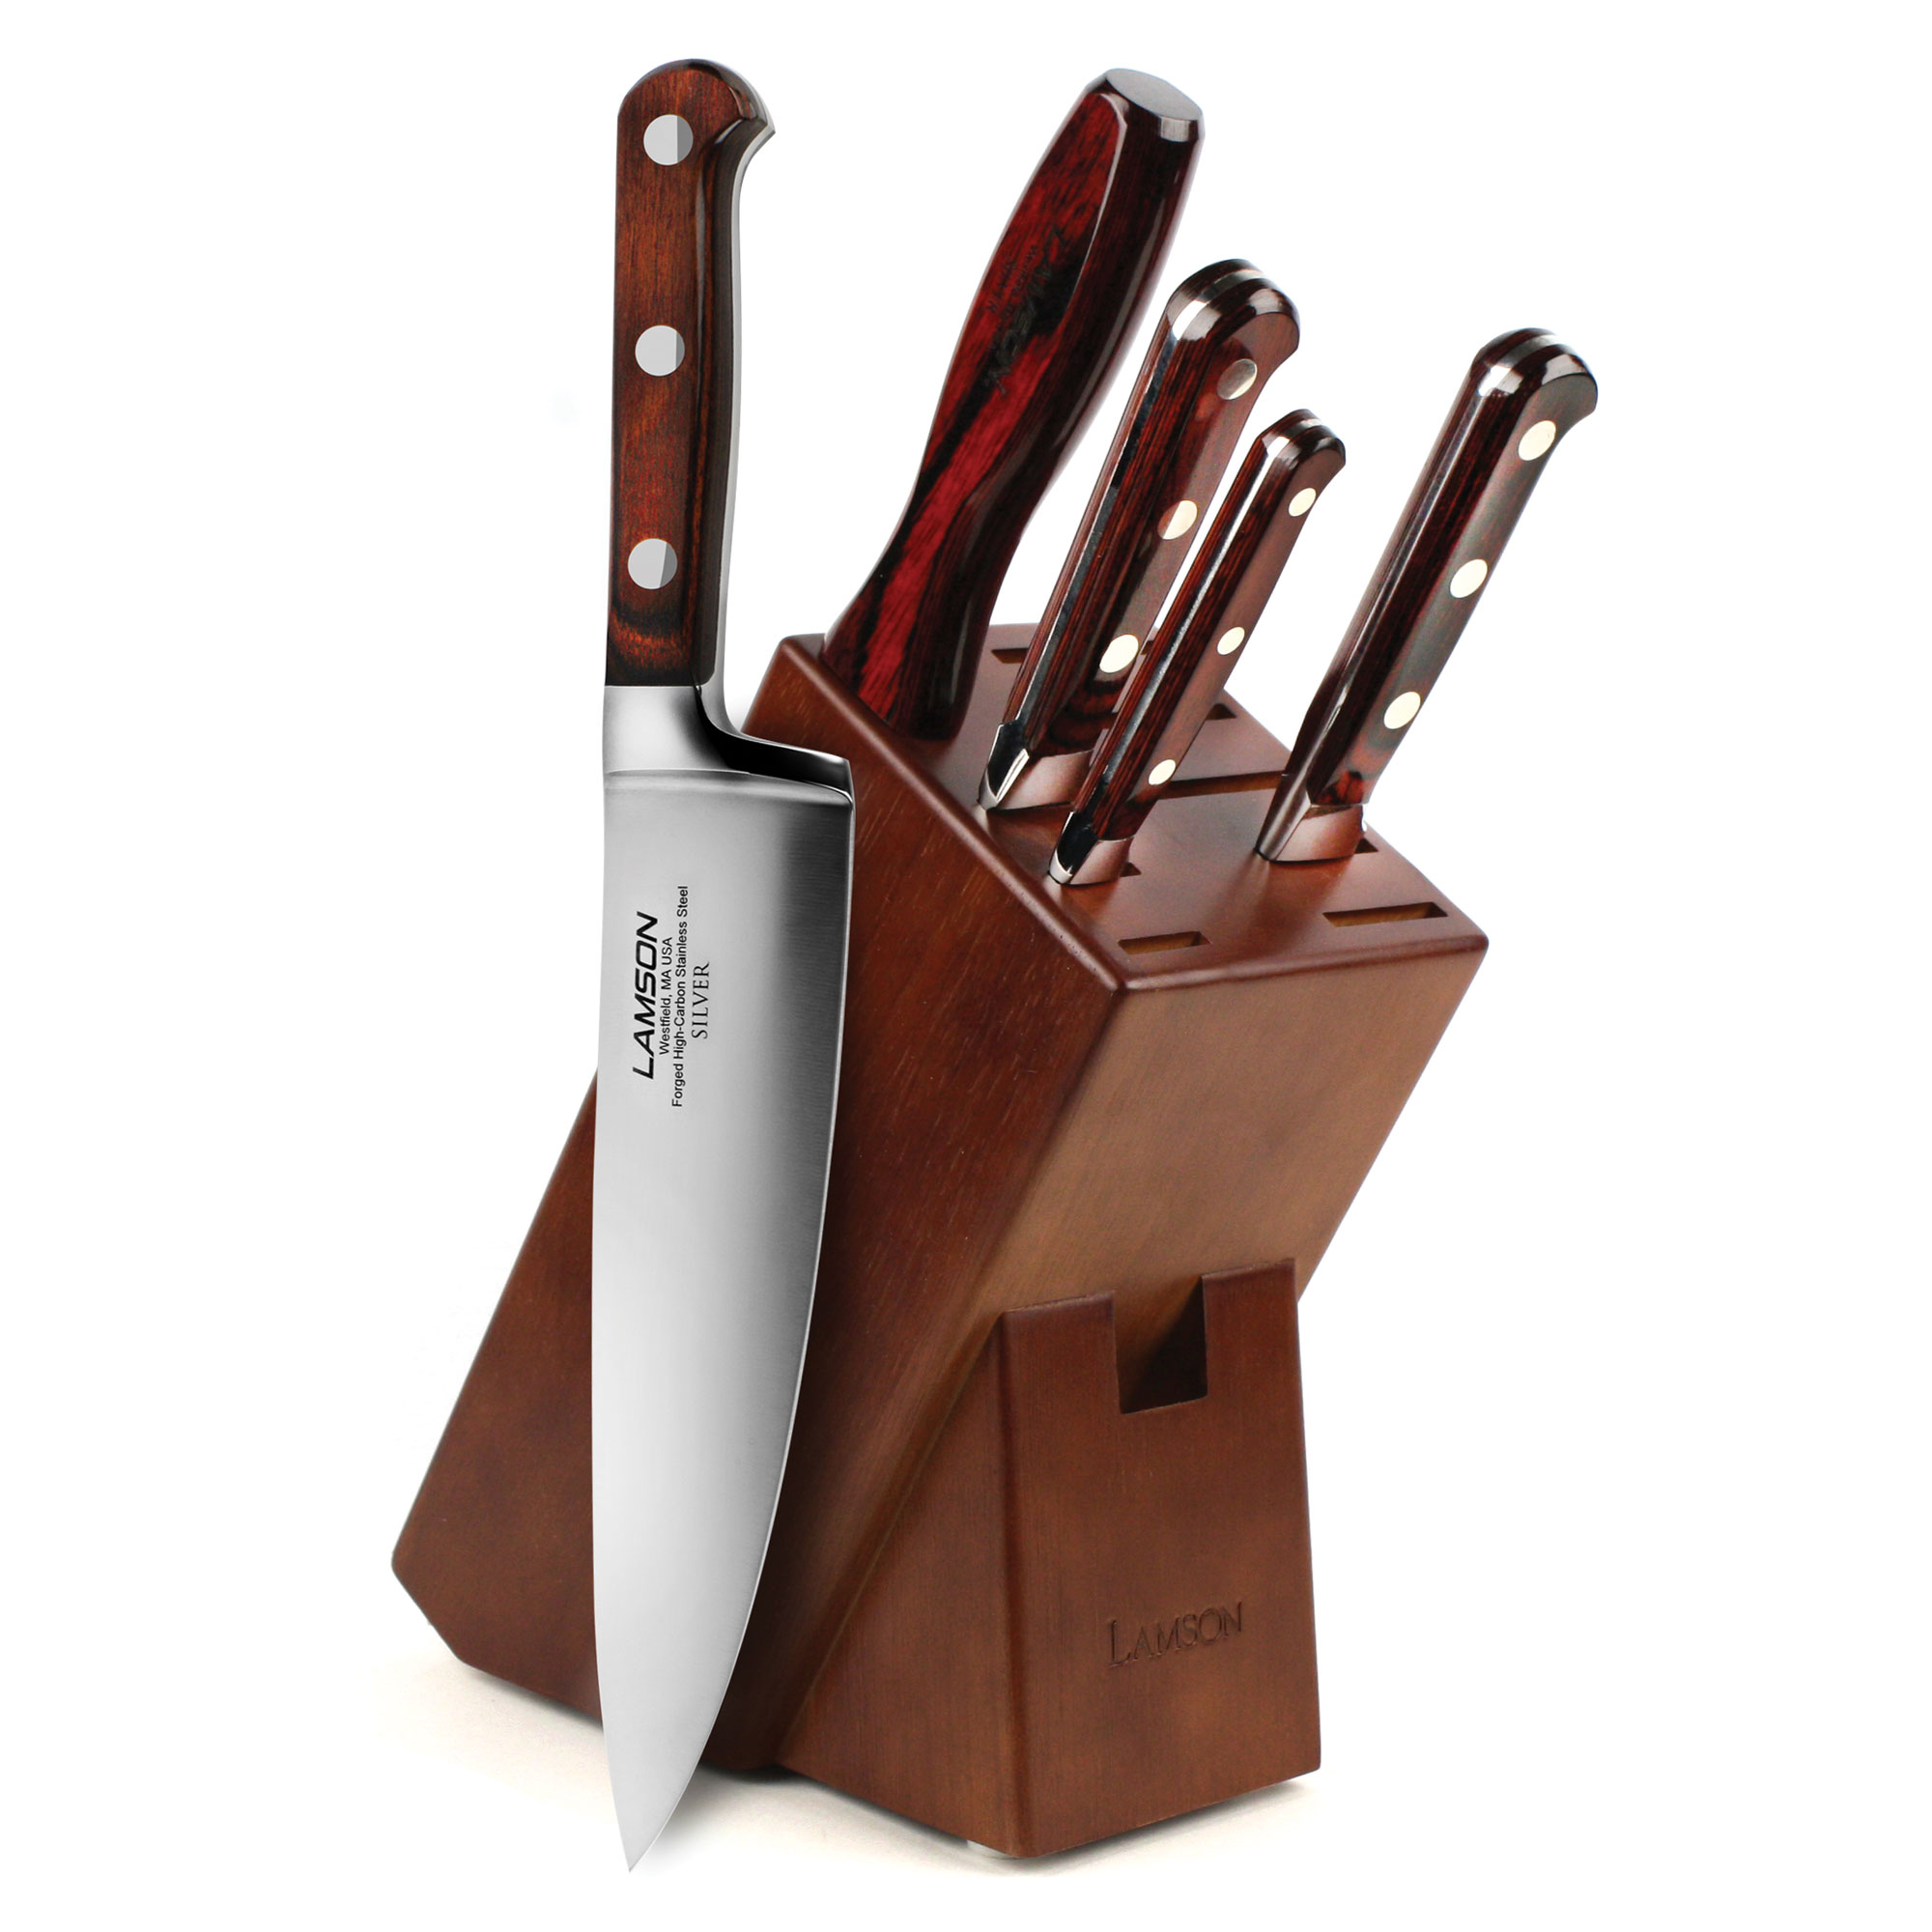 Lamson Silver Knife Block Set 6 Piece Cutlery And More